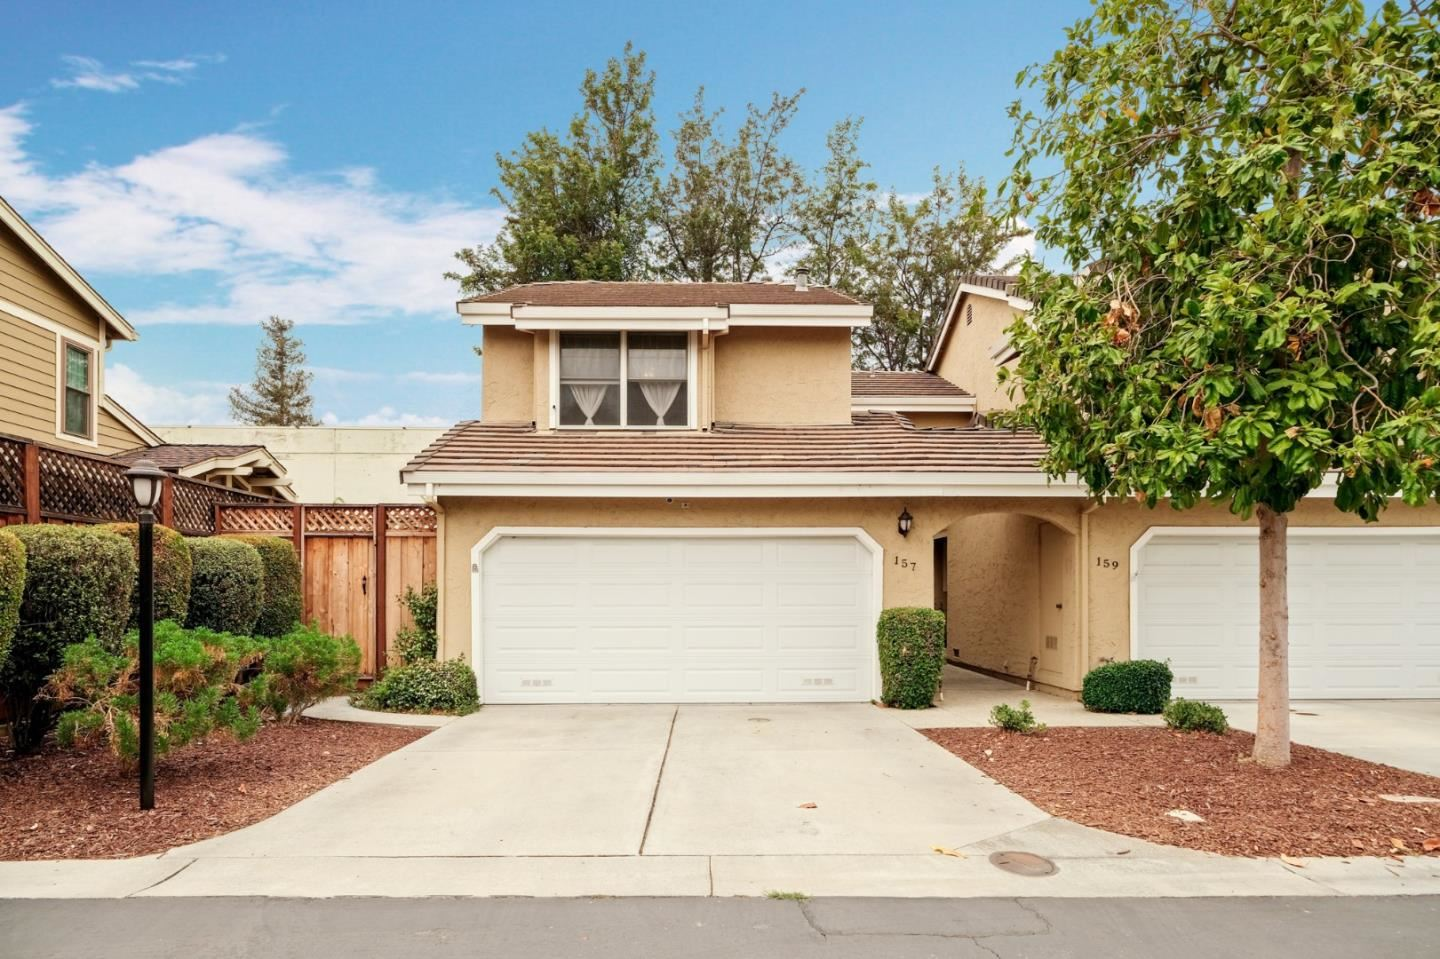 Photo for 157 Redding RD, CAMPBELL, CA 95008 (MLS # ML81807338)